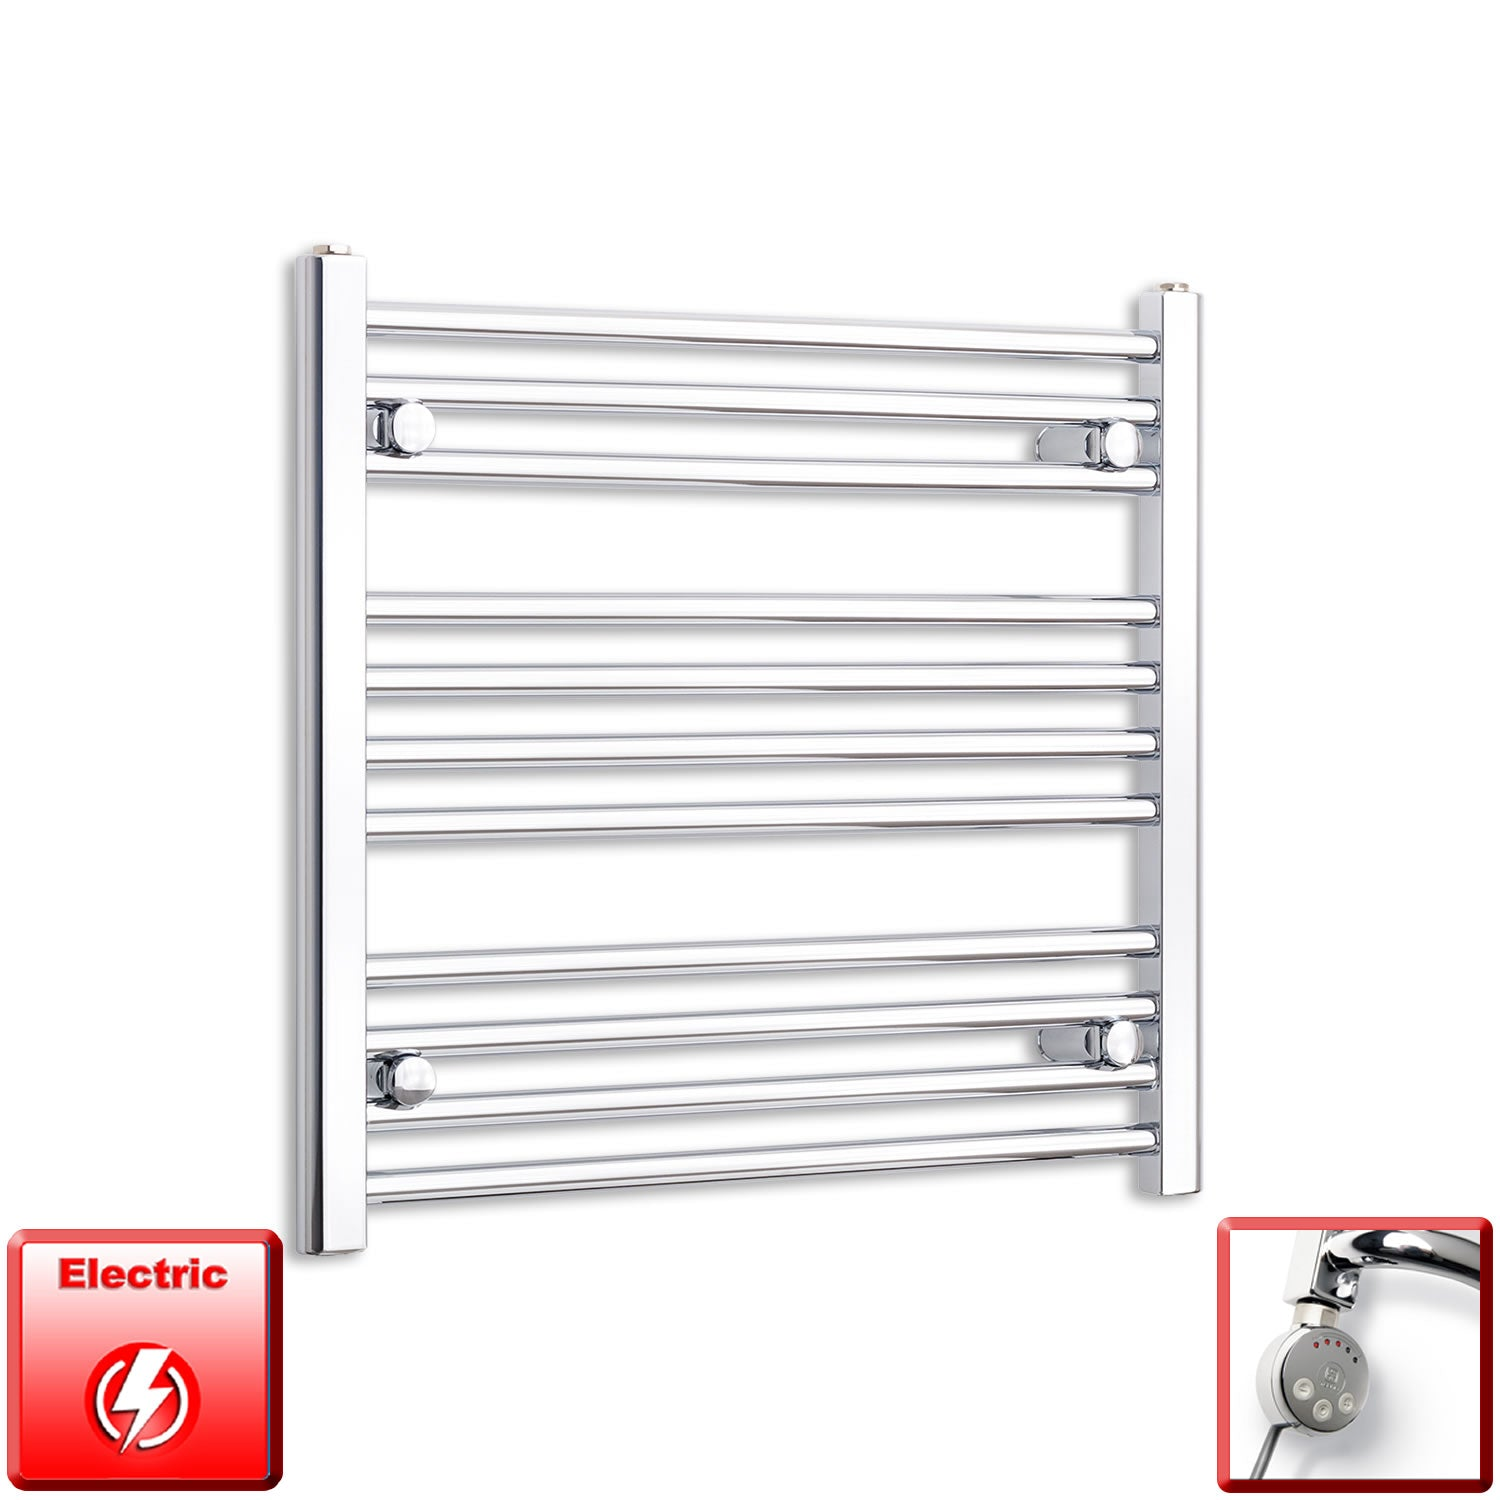 700mm Wide 600mm High Flat Or Curved Chrome Pre-Filled Electric Heated Towel Rail Radiator HTR,MEG Thermostatic Element / Straight